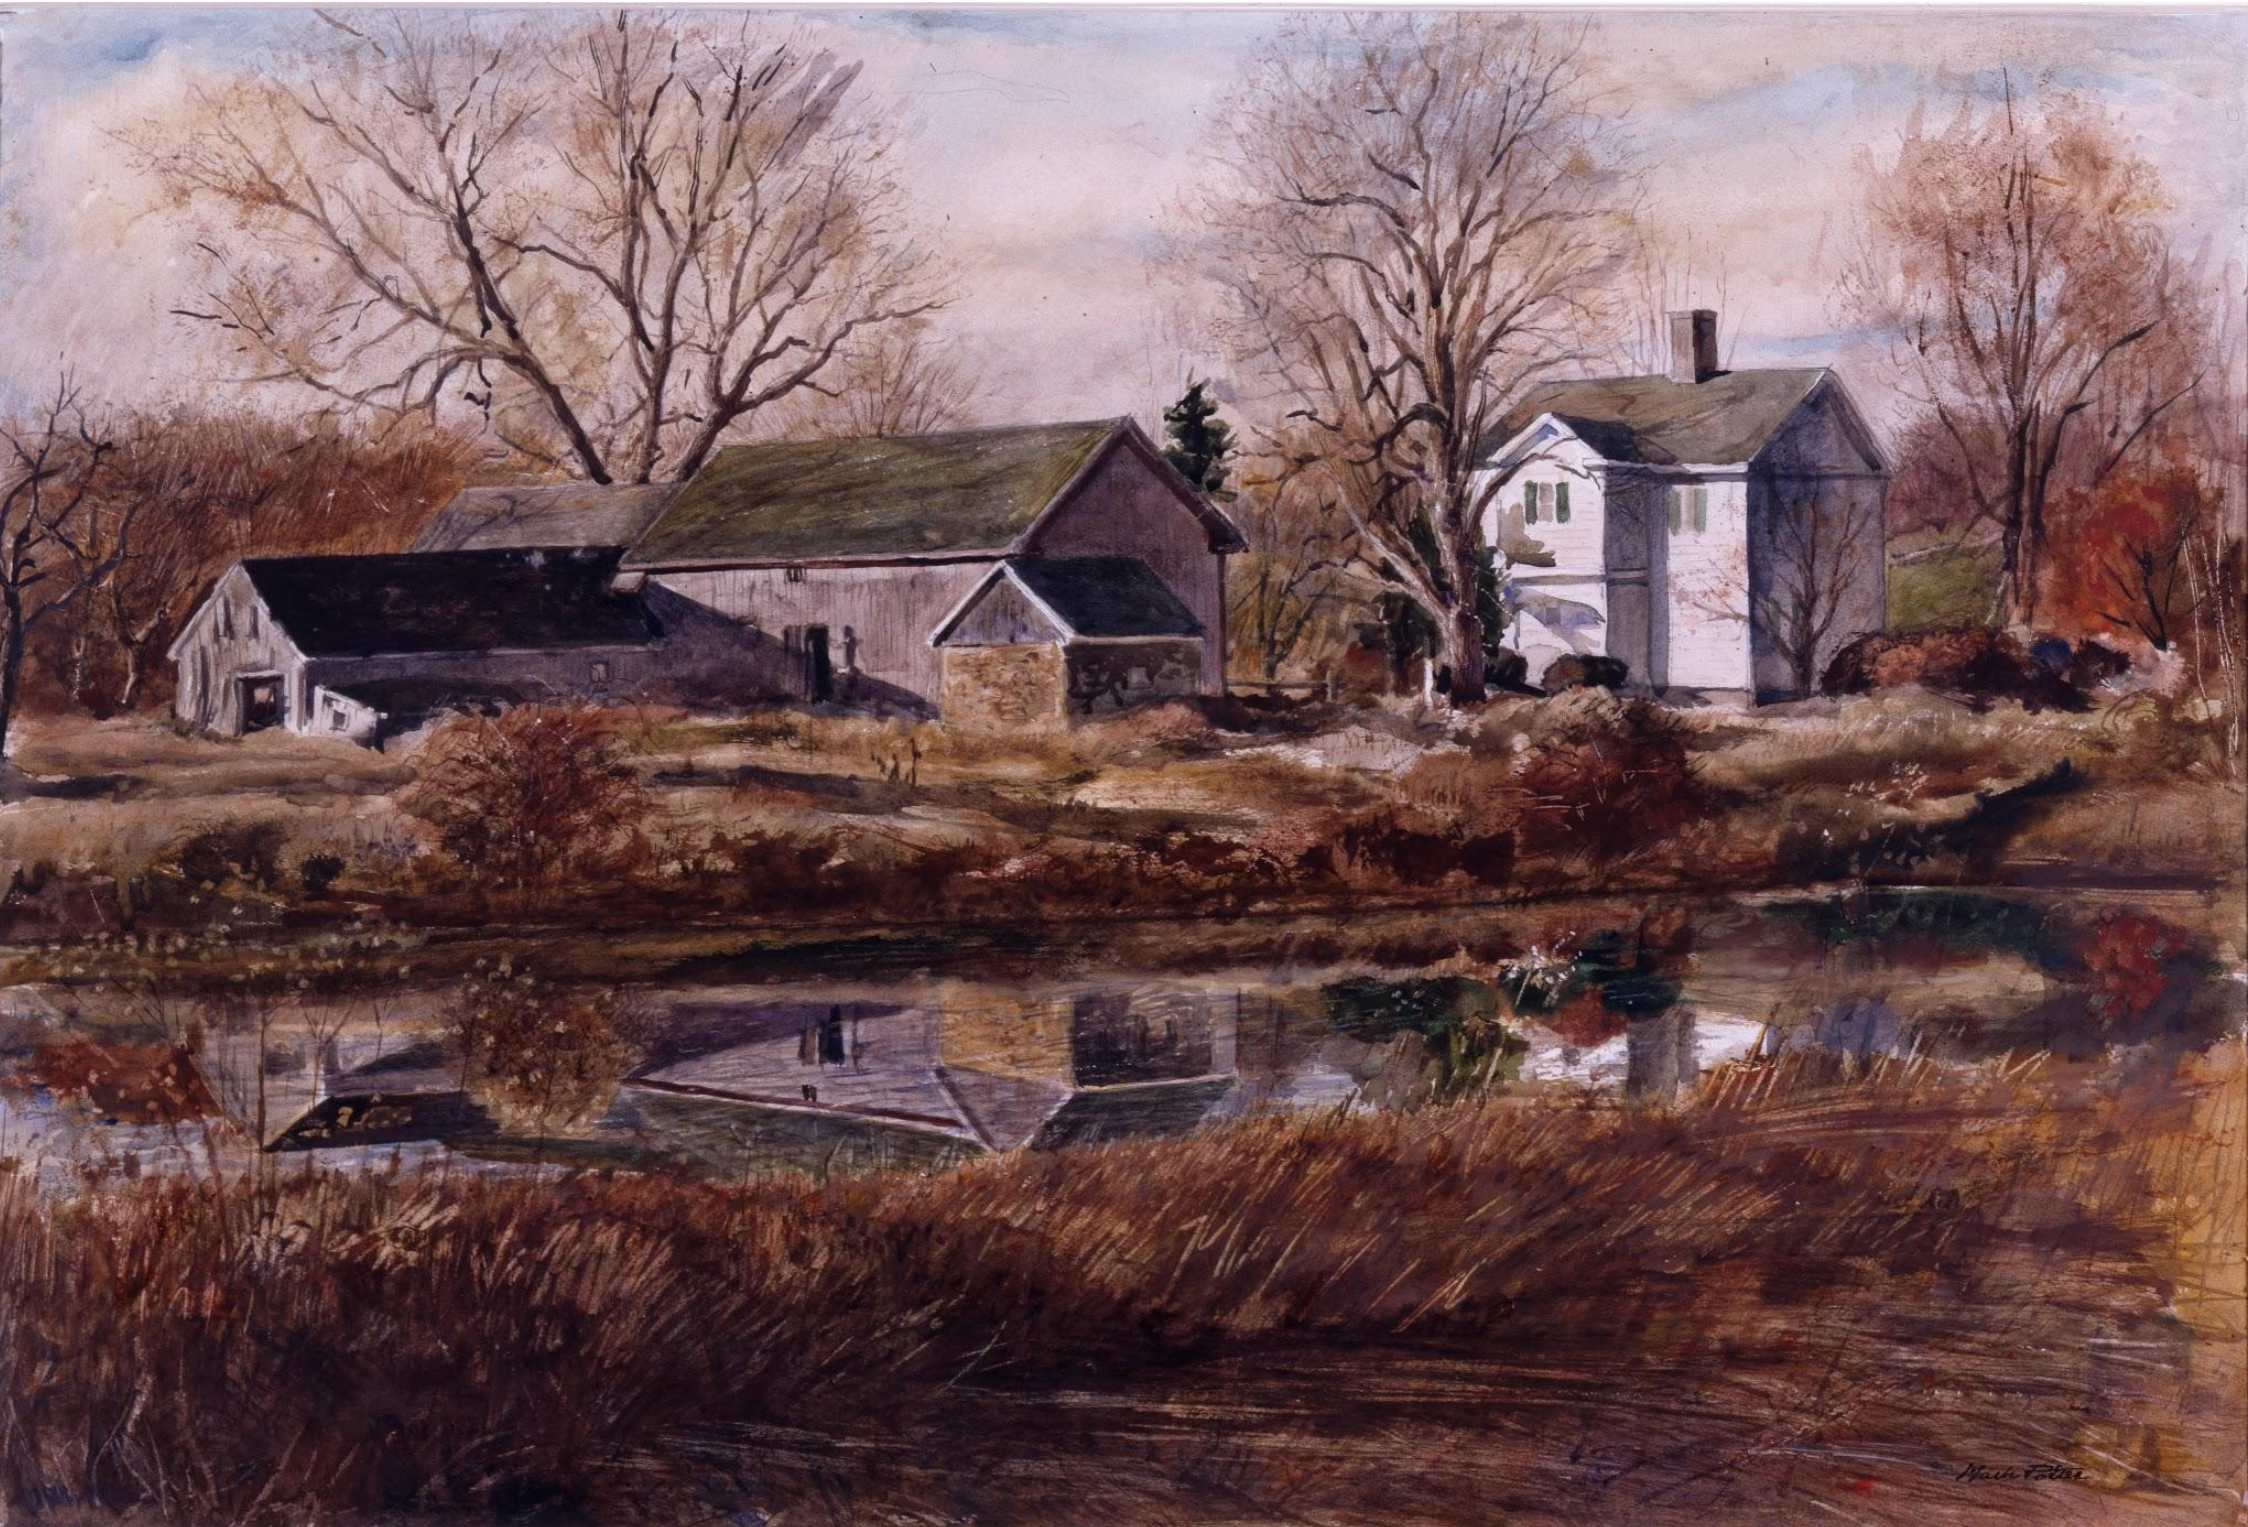 Farm Pond on Church Hill Road.      1990 watercolor drybrush.   19.3 x 29.4 inches.